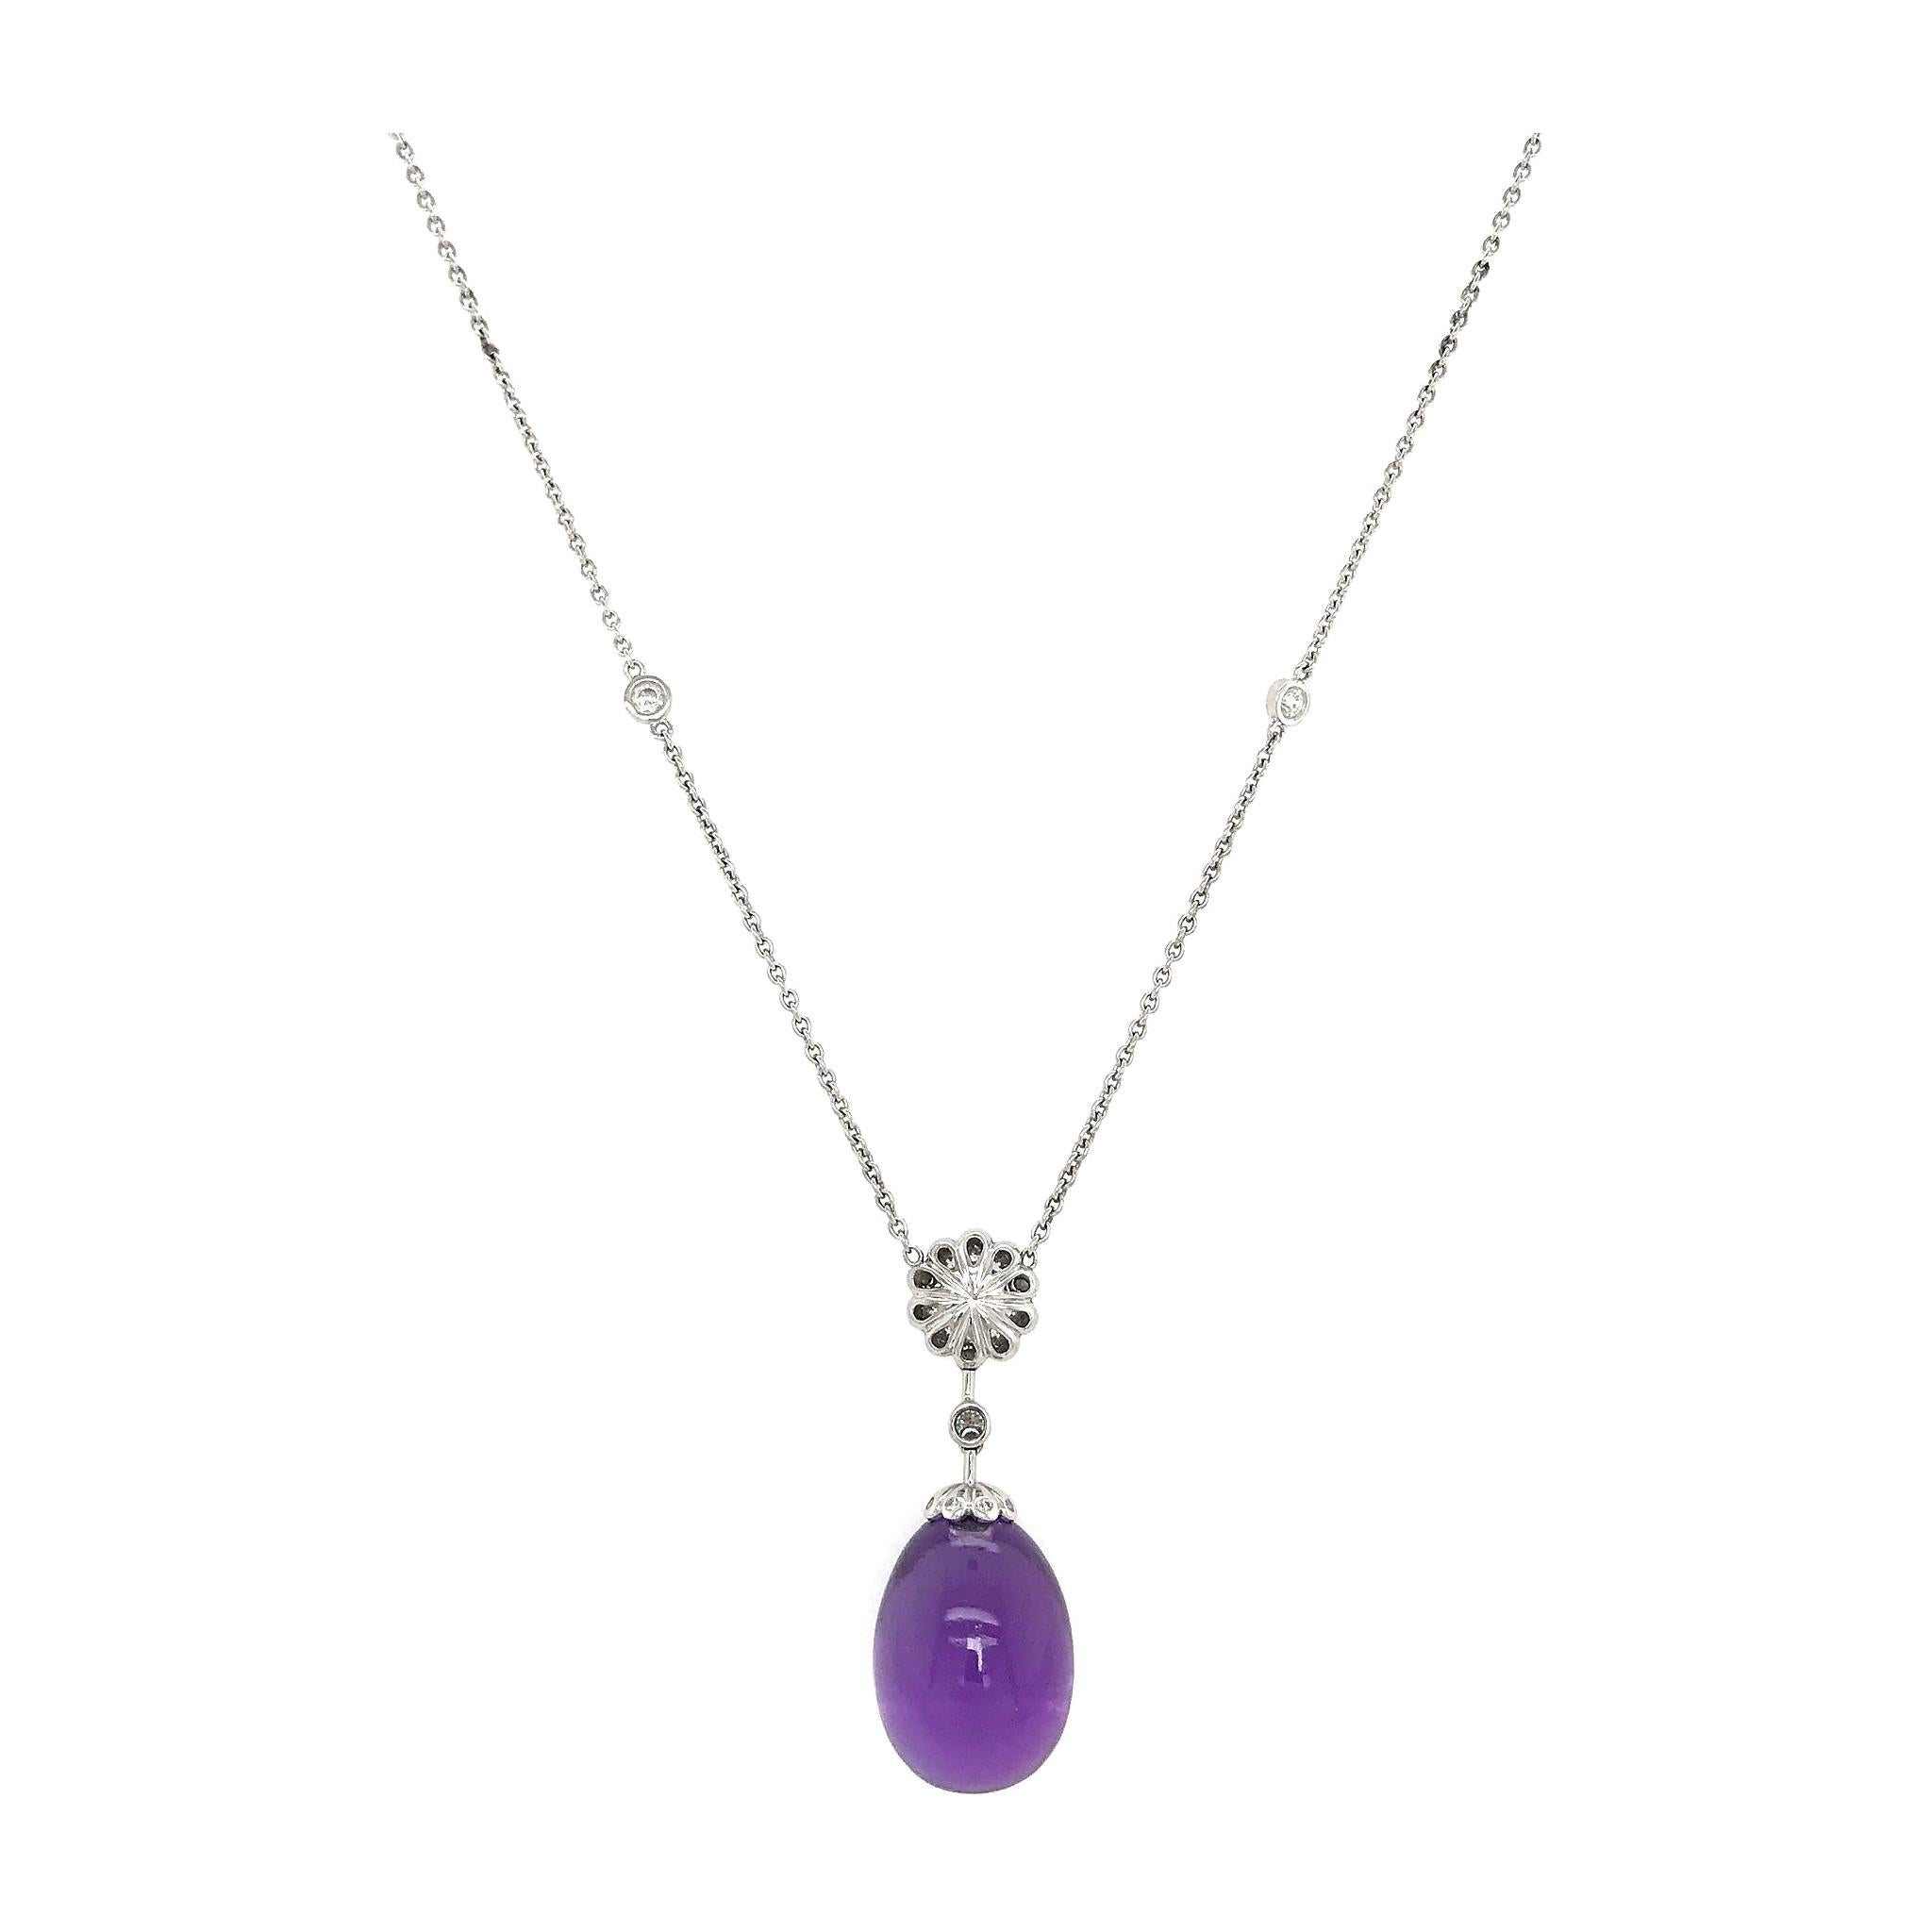 Modern Fabergé Imperial Karenina Diamond and Amethyst Egg Pendant Necklace